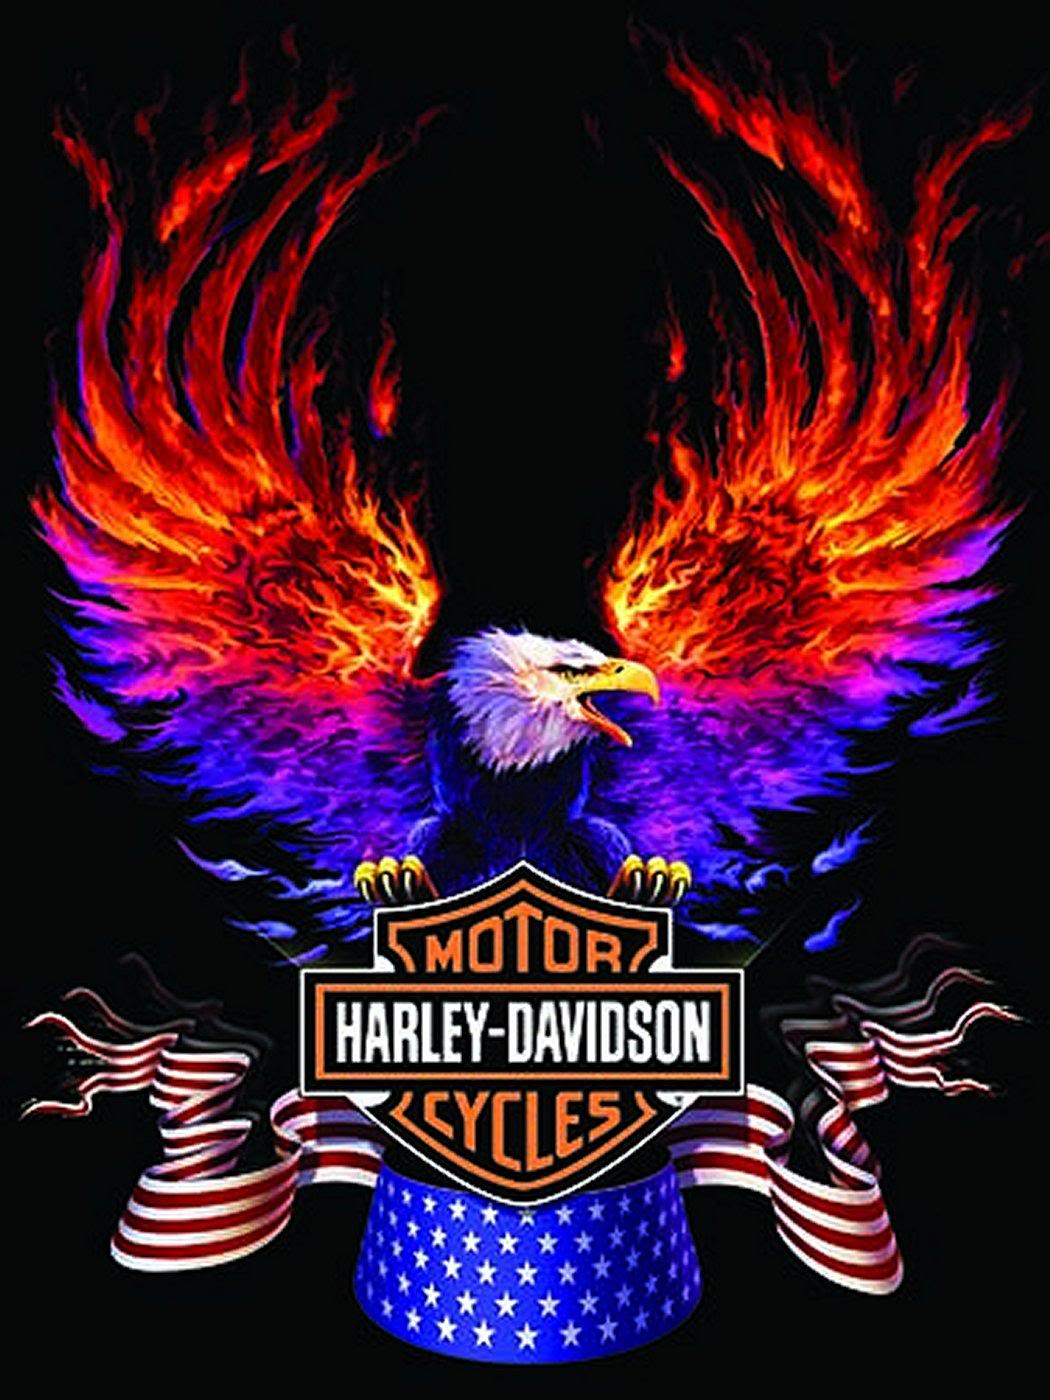 Harley Davidson HD Wallpaper Exclusive Android Wallpaper Bikes 86676 1050x1400